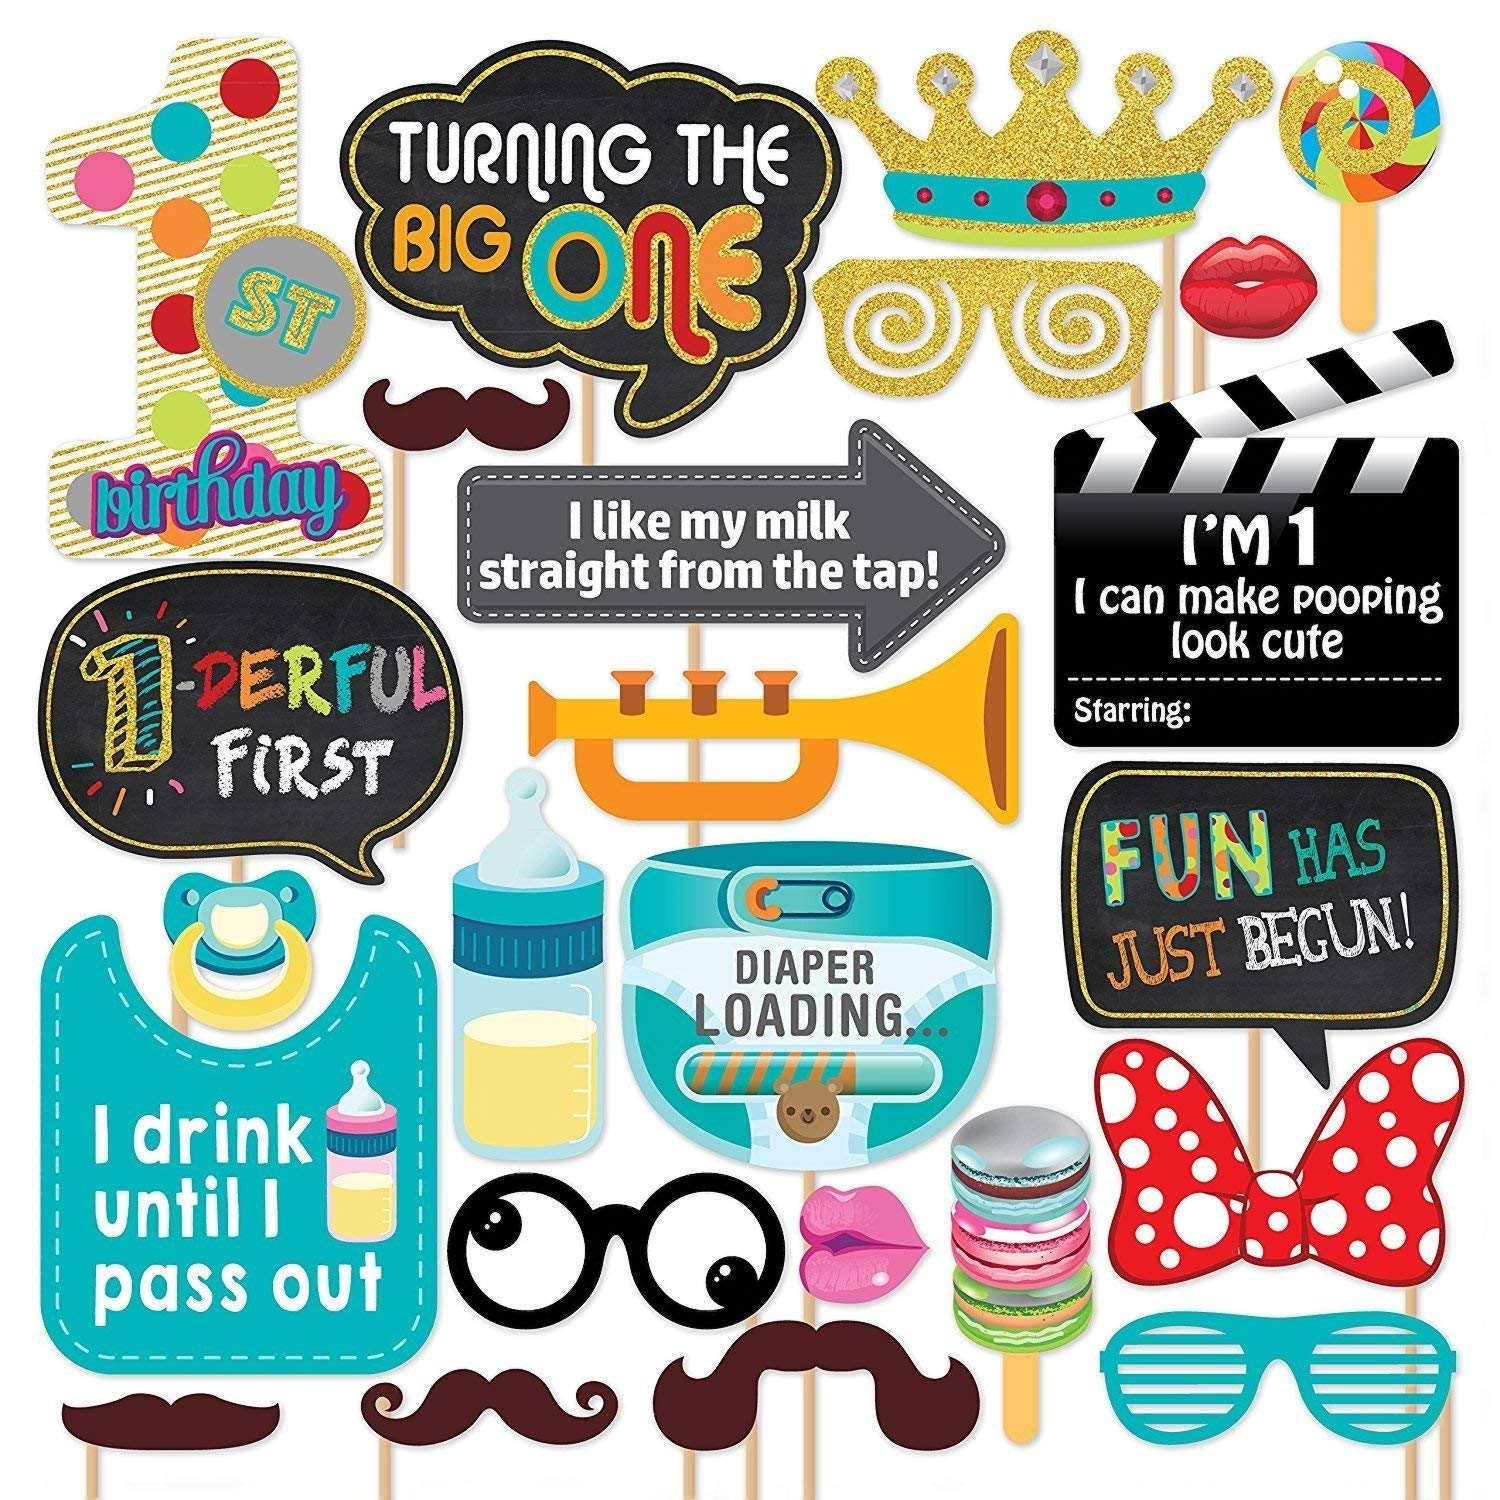 Party Propz First Birthday Photo Booth Props 24pcs For 1st Bday Theme Supplies Girl Boys Baby Kids Combo Decorations Items Cake Smash High Chair Babies Room Decor Photoshoot Selfie Funny Card Props Amazon In Toys Games